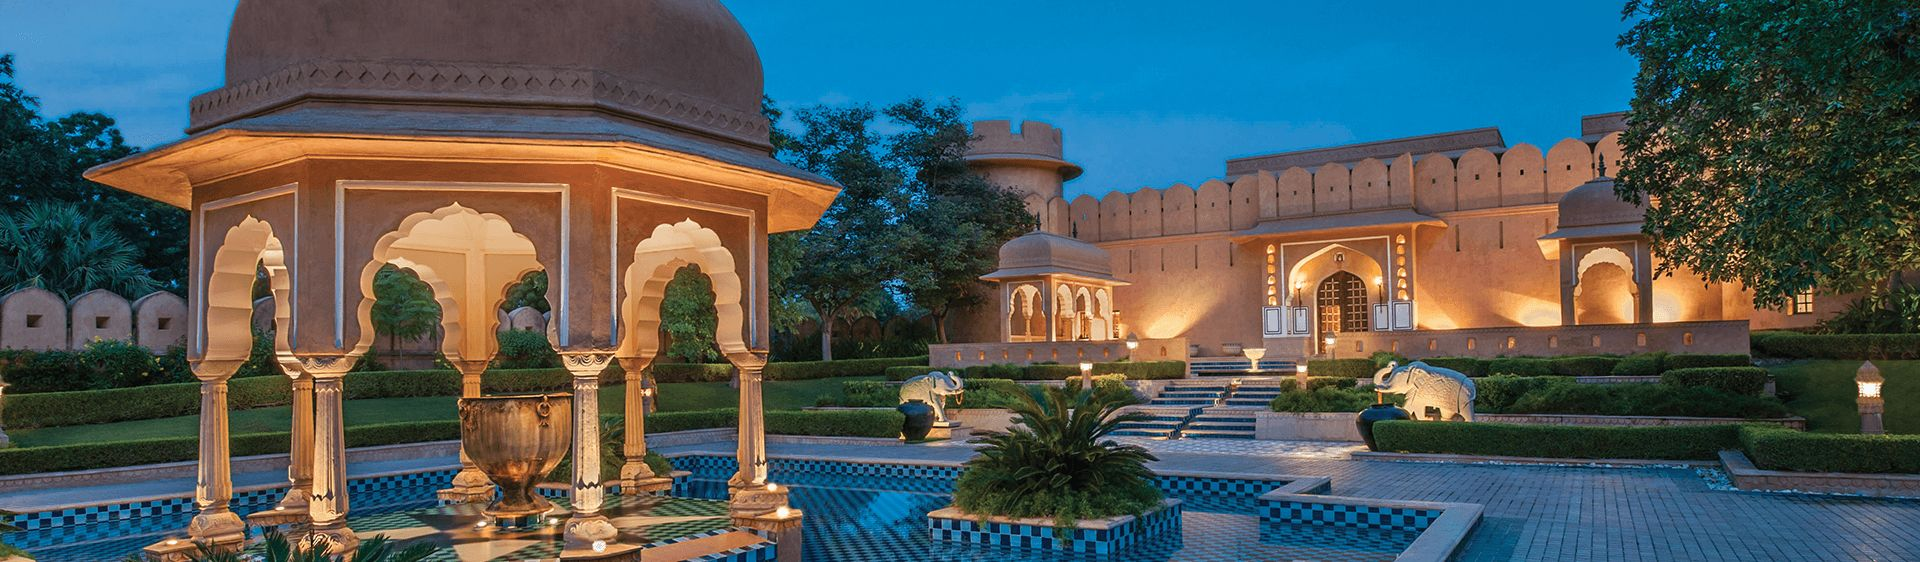 Simply Jaipur With The Oberoi Rajvilas - Self Drive Tour